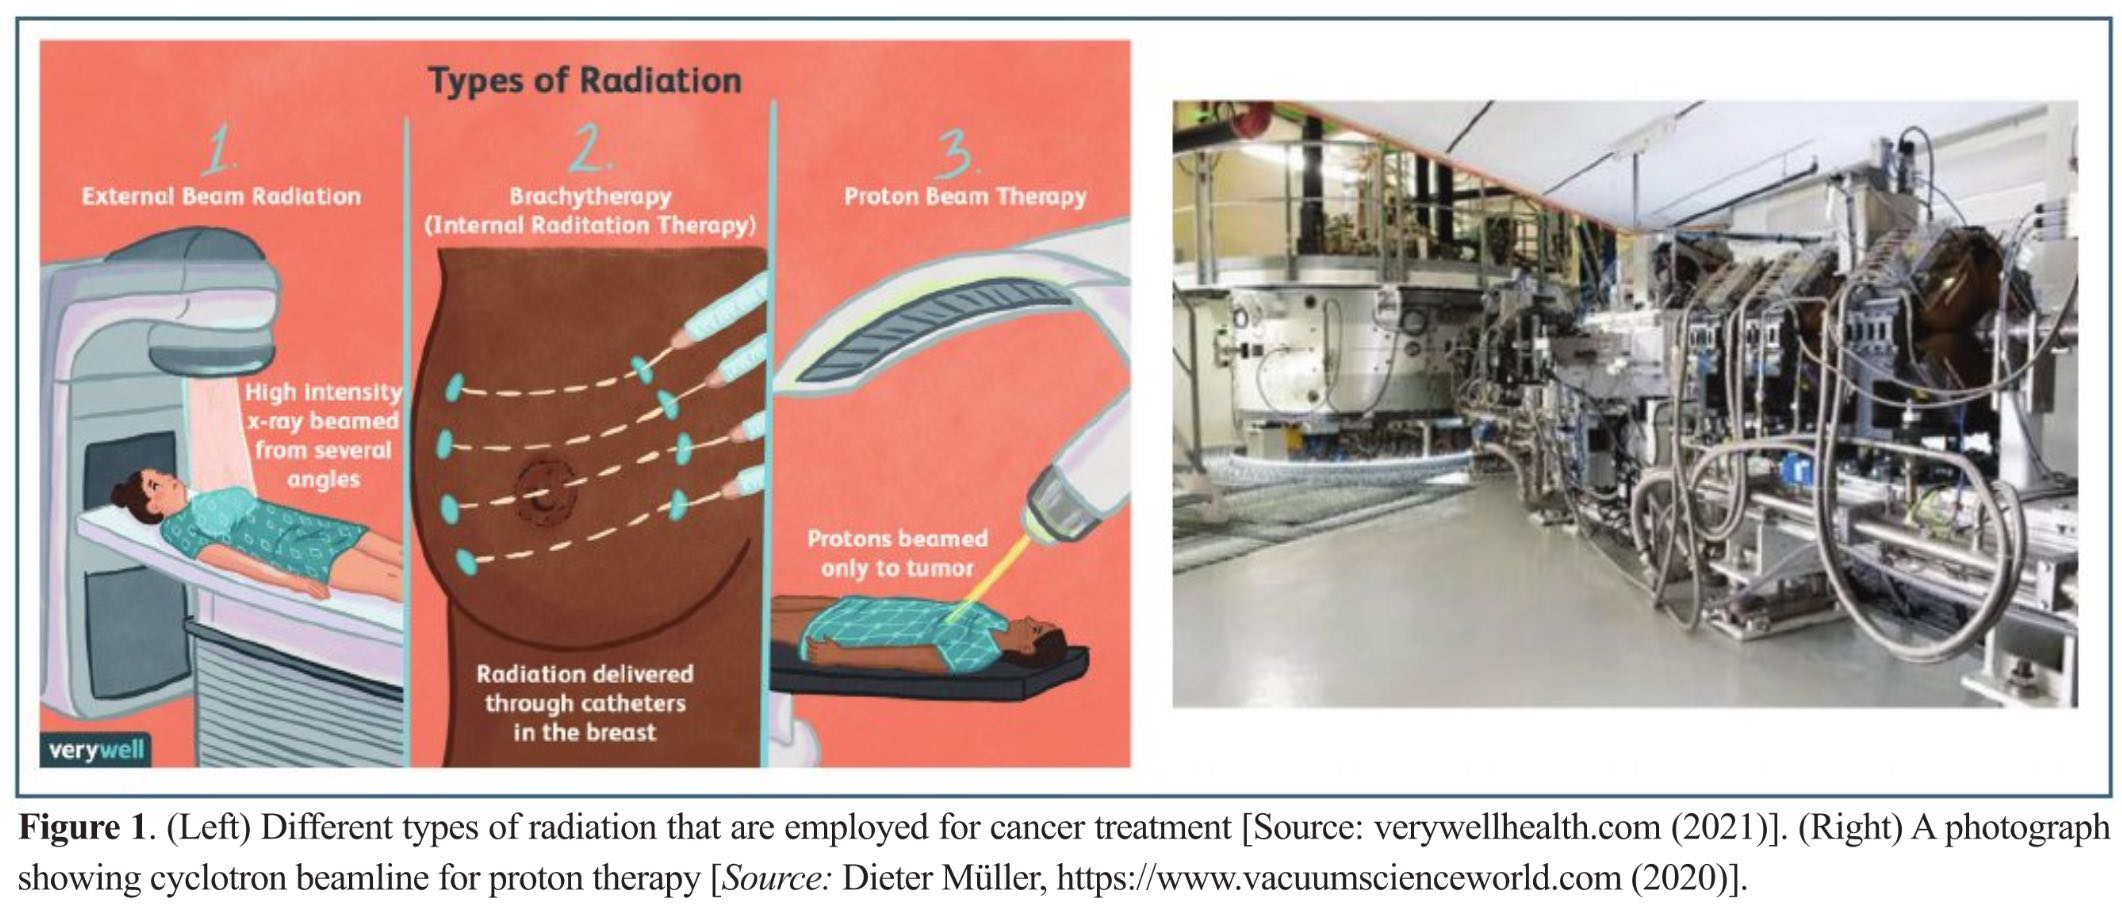 Heavy Ion Therapy: An Emerging Technology in Cancer Treatment